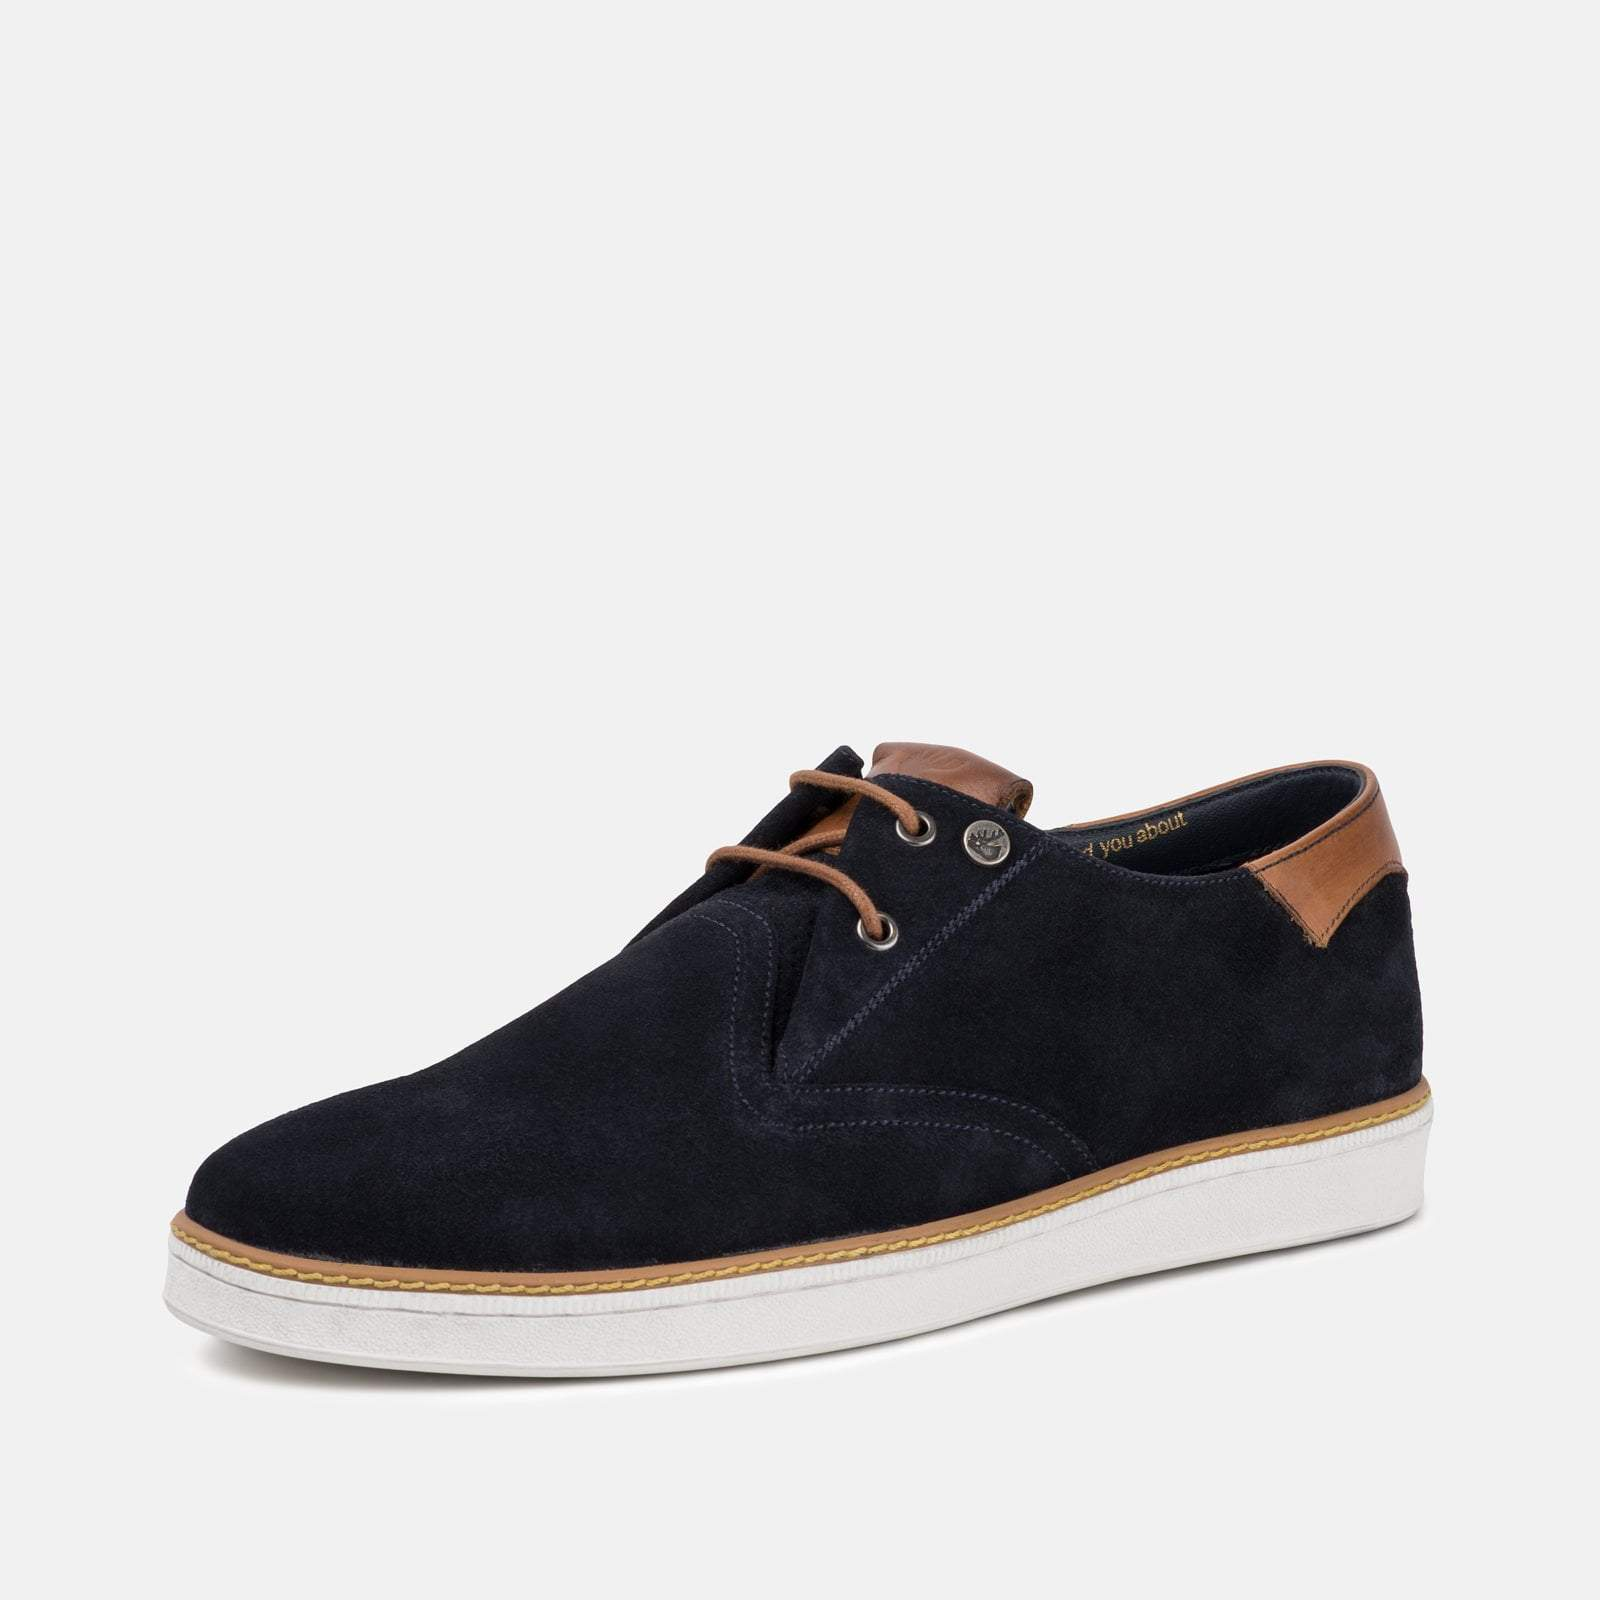 Goodwin Smith Footwear UK 6 / EURO 39 / US 7 / Navy / Suede PORTOFINO NAVY